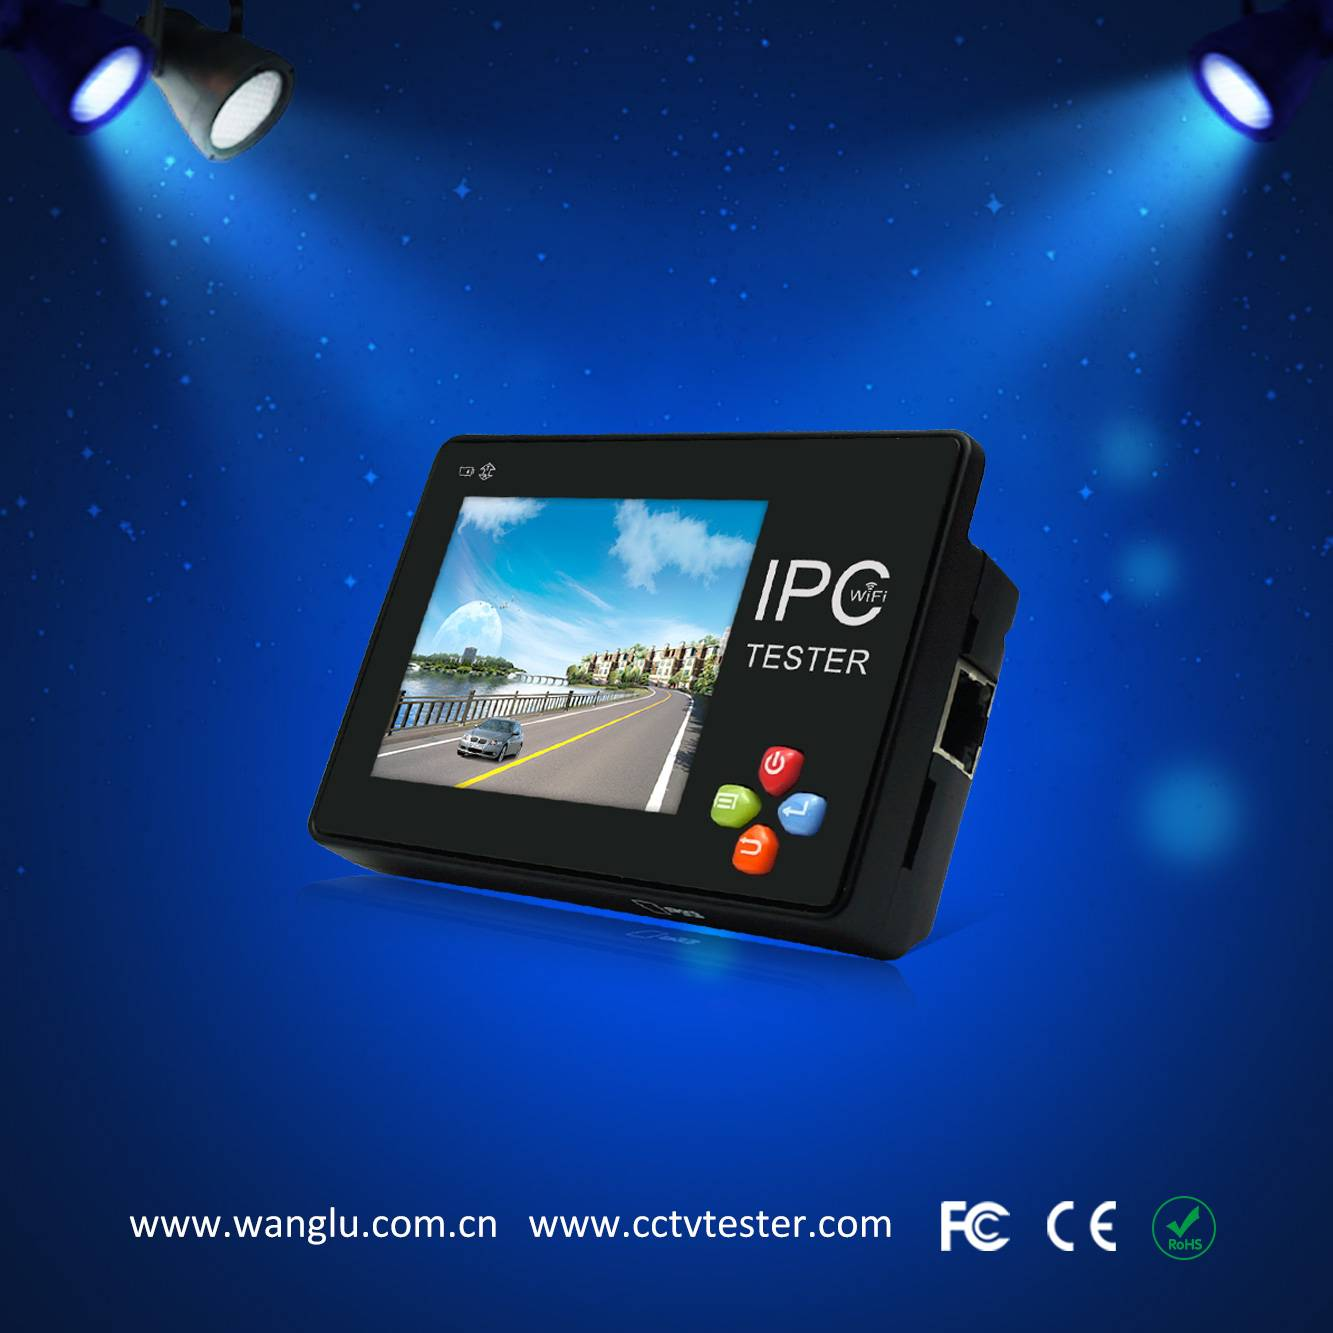 3.5 inch touch screen  wrist ip  camera tester IPC-1600